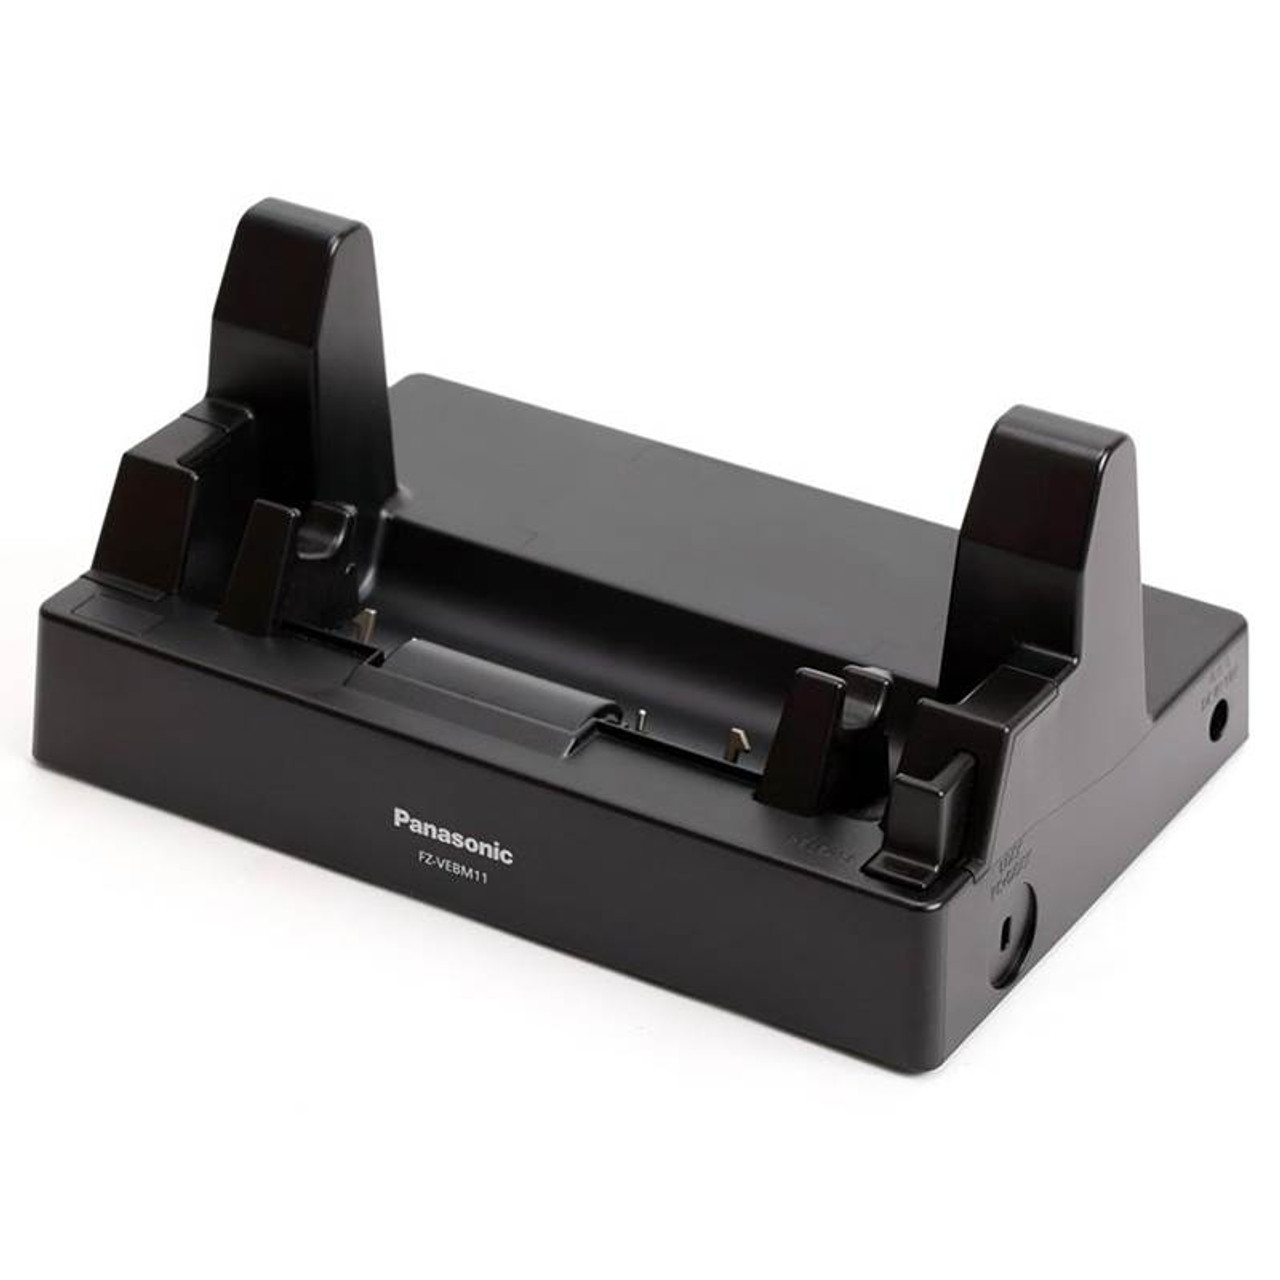 Image for Panasonic inLite Versionin Cradle for FZ-M1 and FZ-B2 CX Computer Superstore